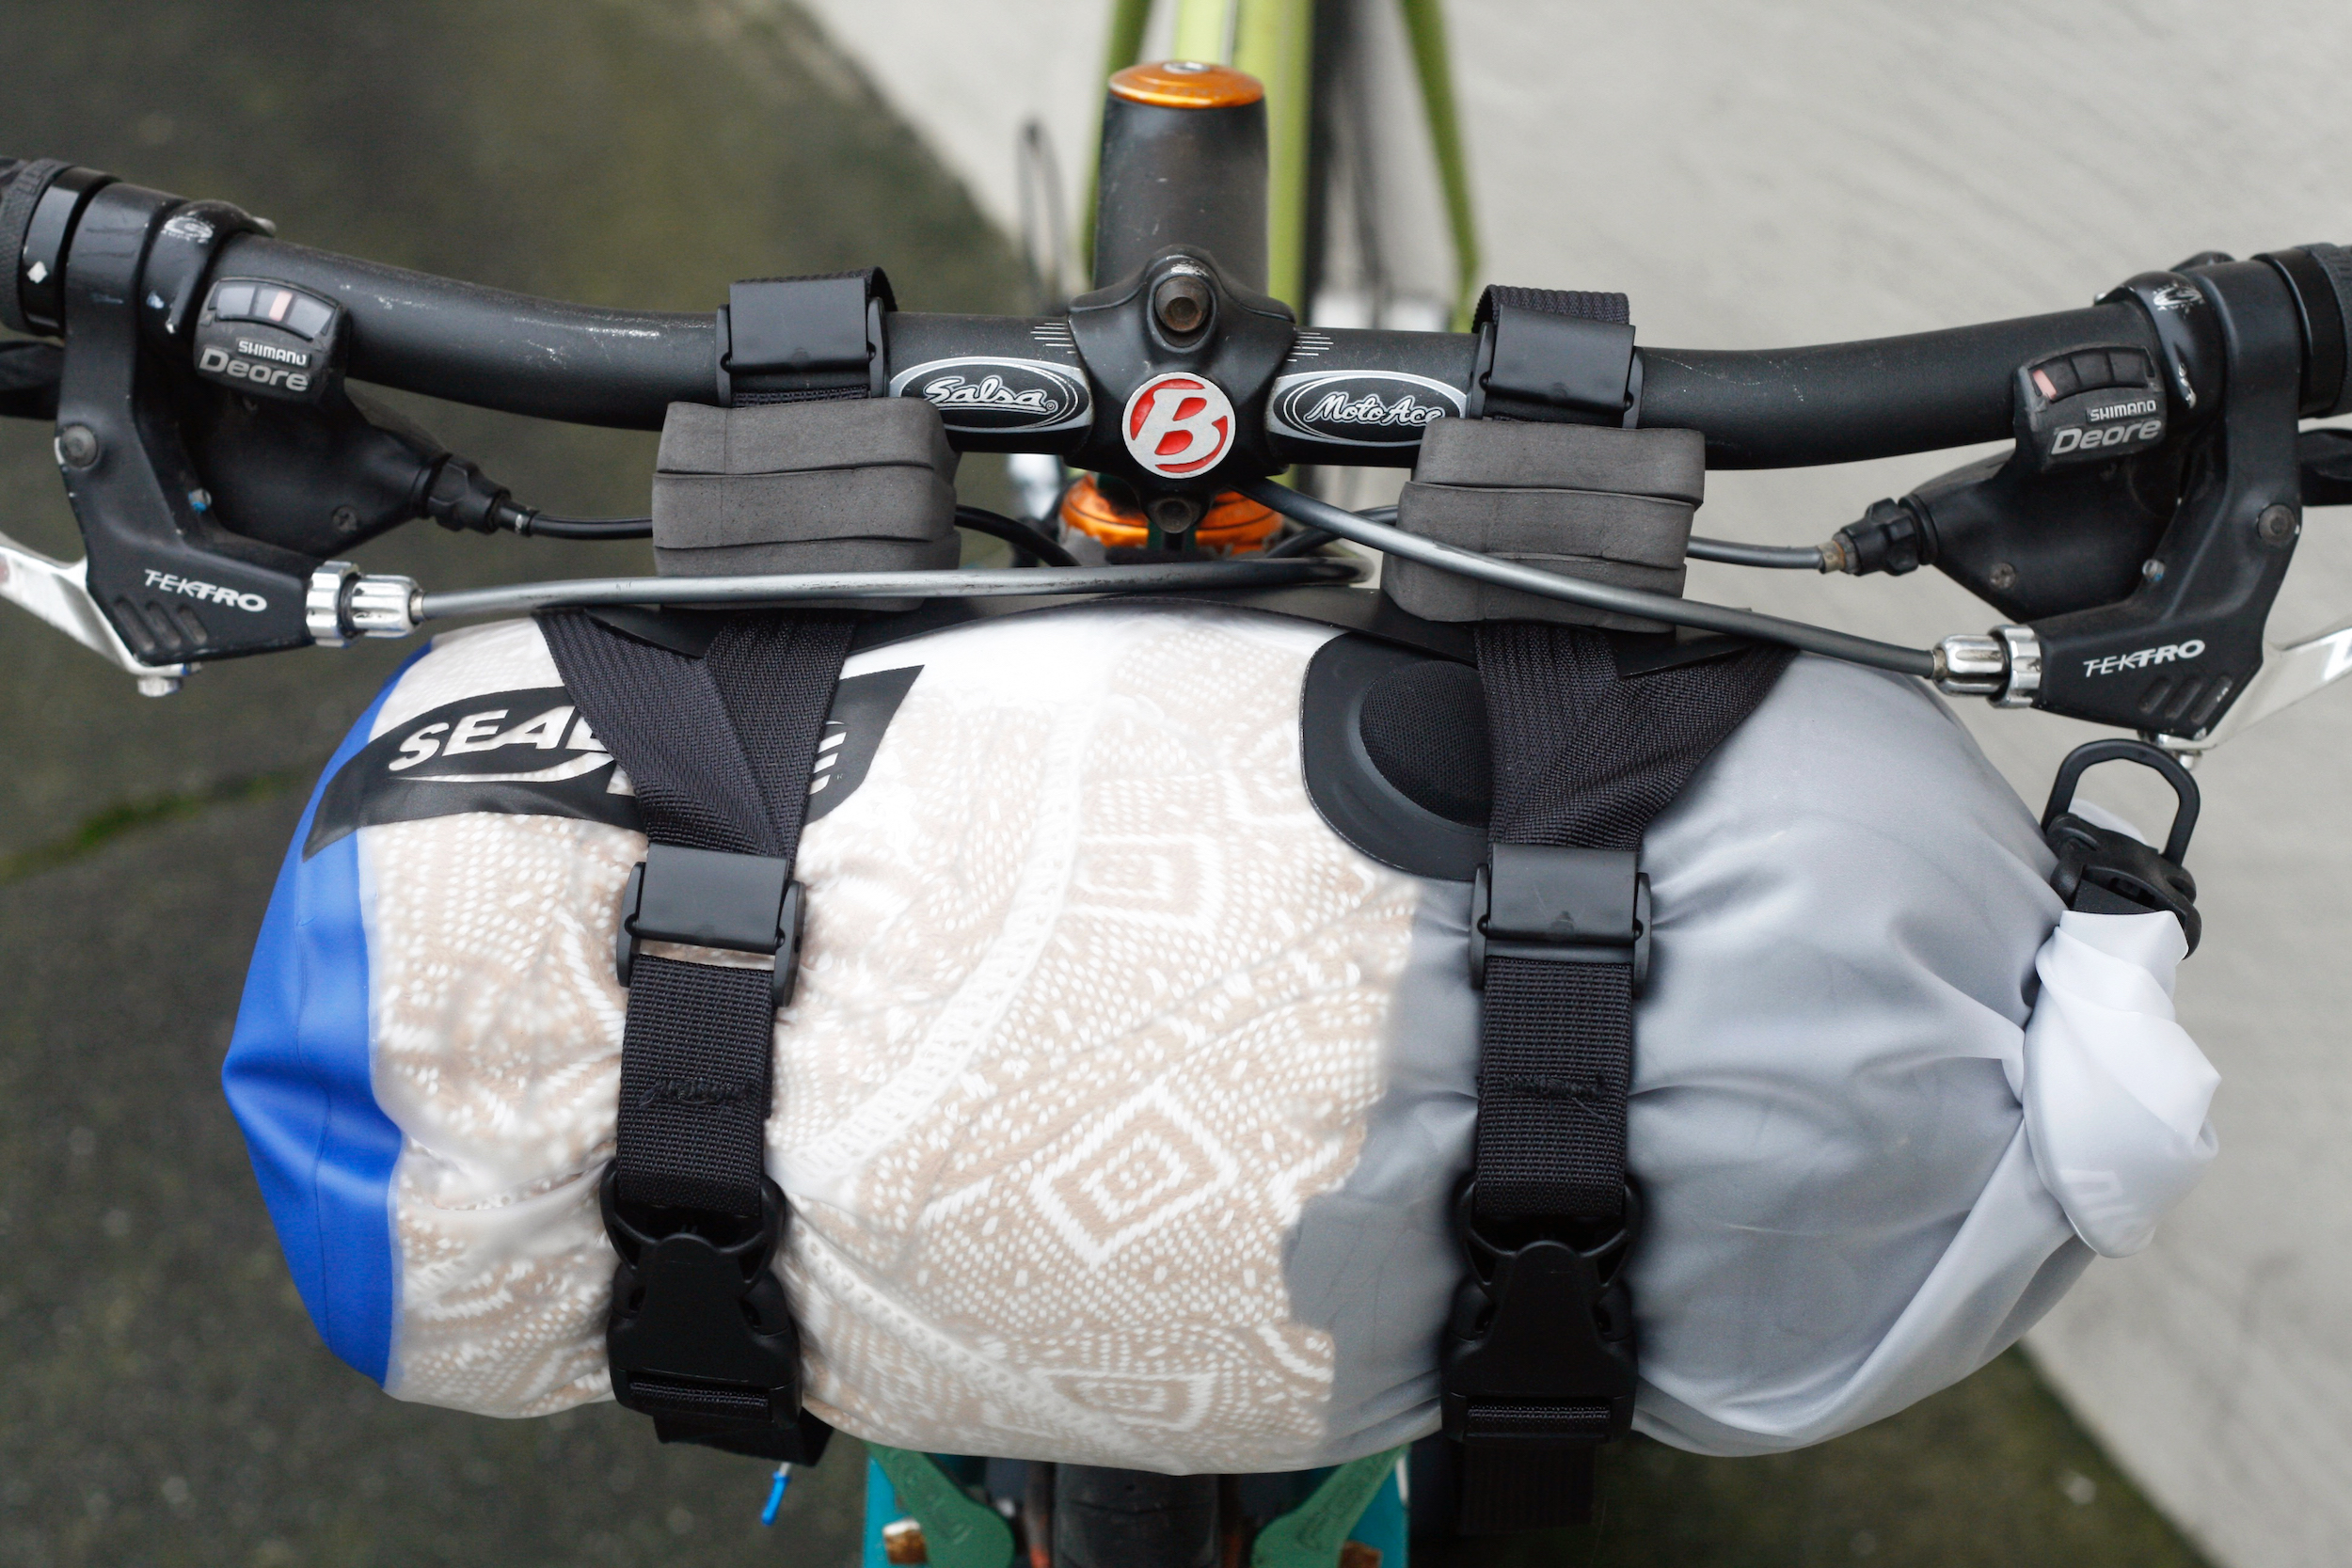 (3) spacers on each handlebar attachment, (3) spacers on lower attachment point, 5L dry bag shown, this bike doesn't fit a larger dry bag because it would run into the exposed brake cable